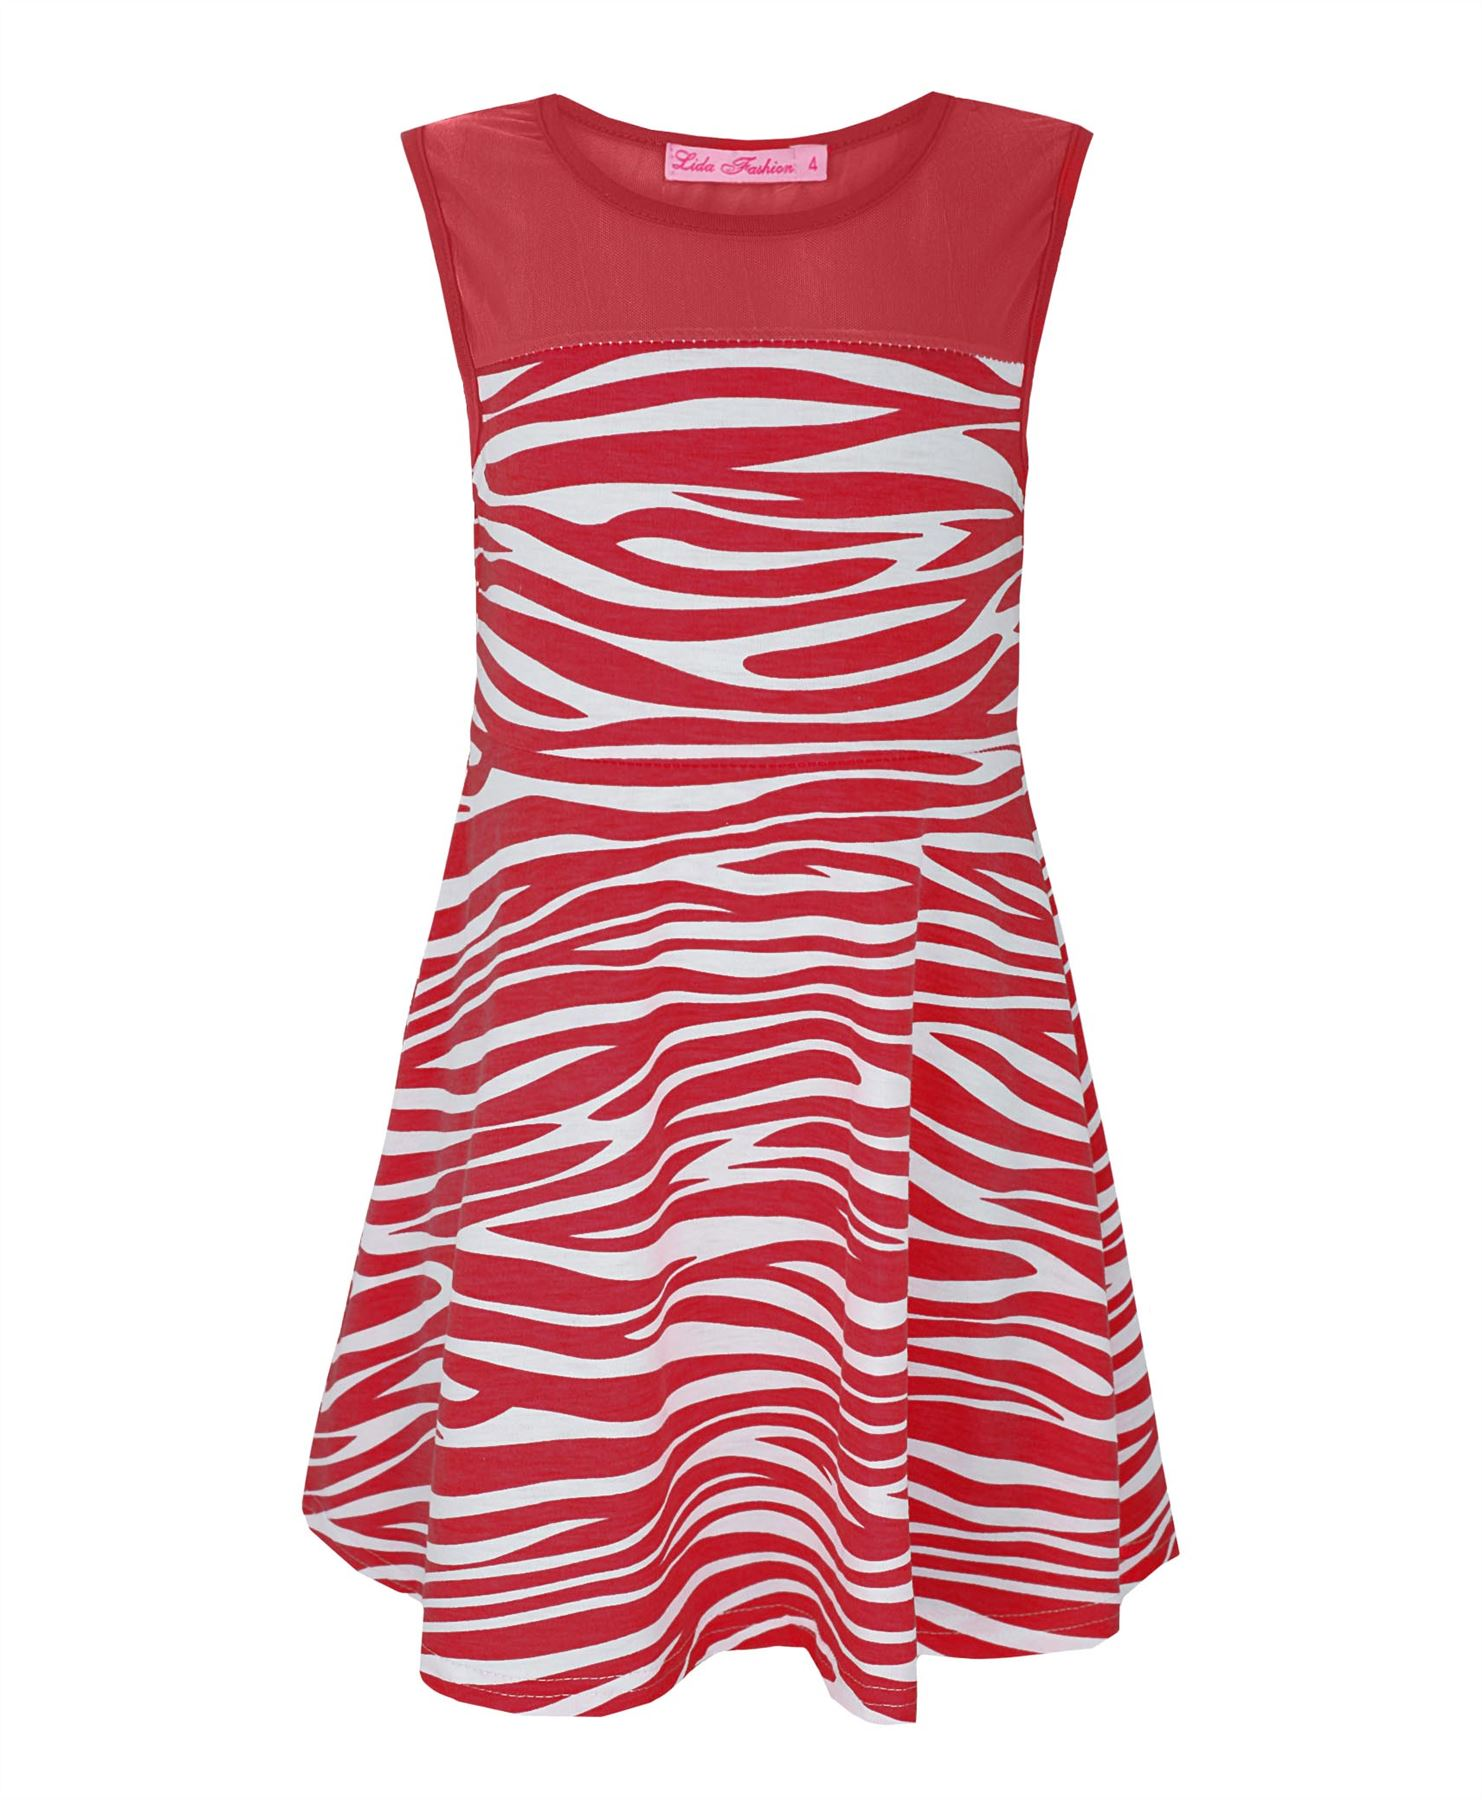 Free shipping BOTH ways on zebra dresses for girl kids, from our vast selection of styles. Fast delivery, and 24/7/ real-person service with a smile. Click or call